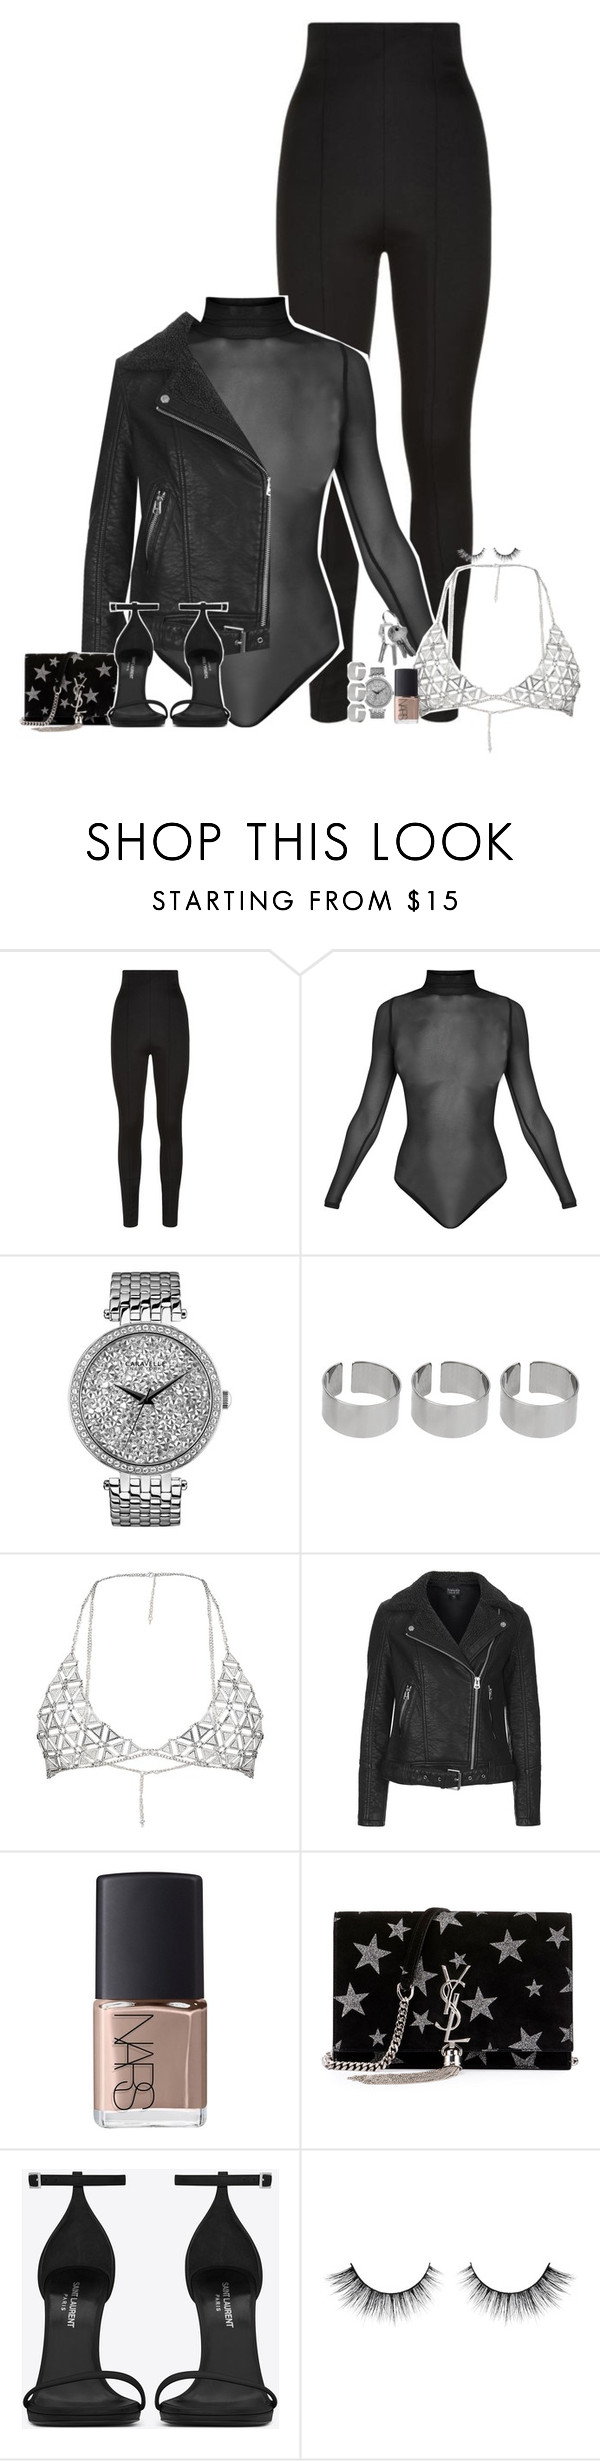 """""""Set 509 -"""" by xjulie1999 ❤ liked on Polyvore featuring Balmain, Caravelle by Bulova, ASOS, Topshop, NARS Cosmetics and Yves Saint Laurent"""